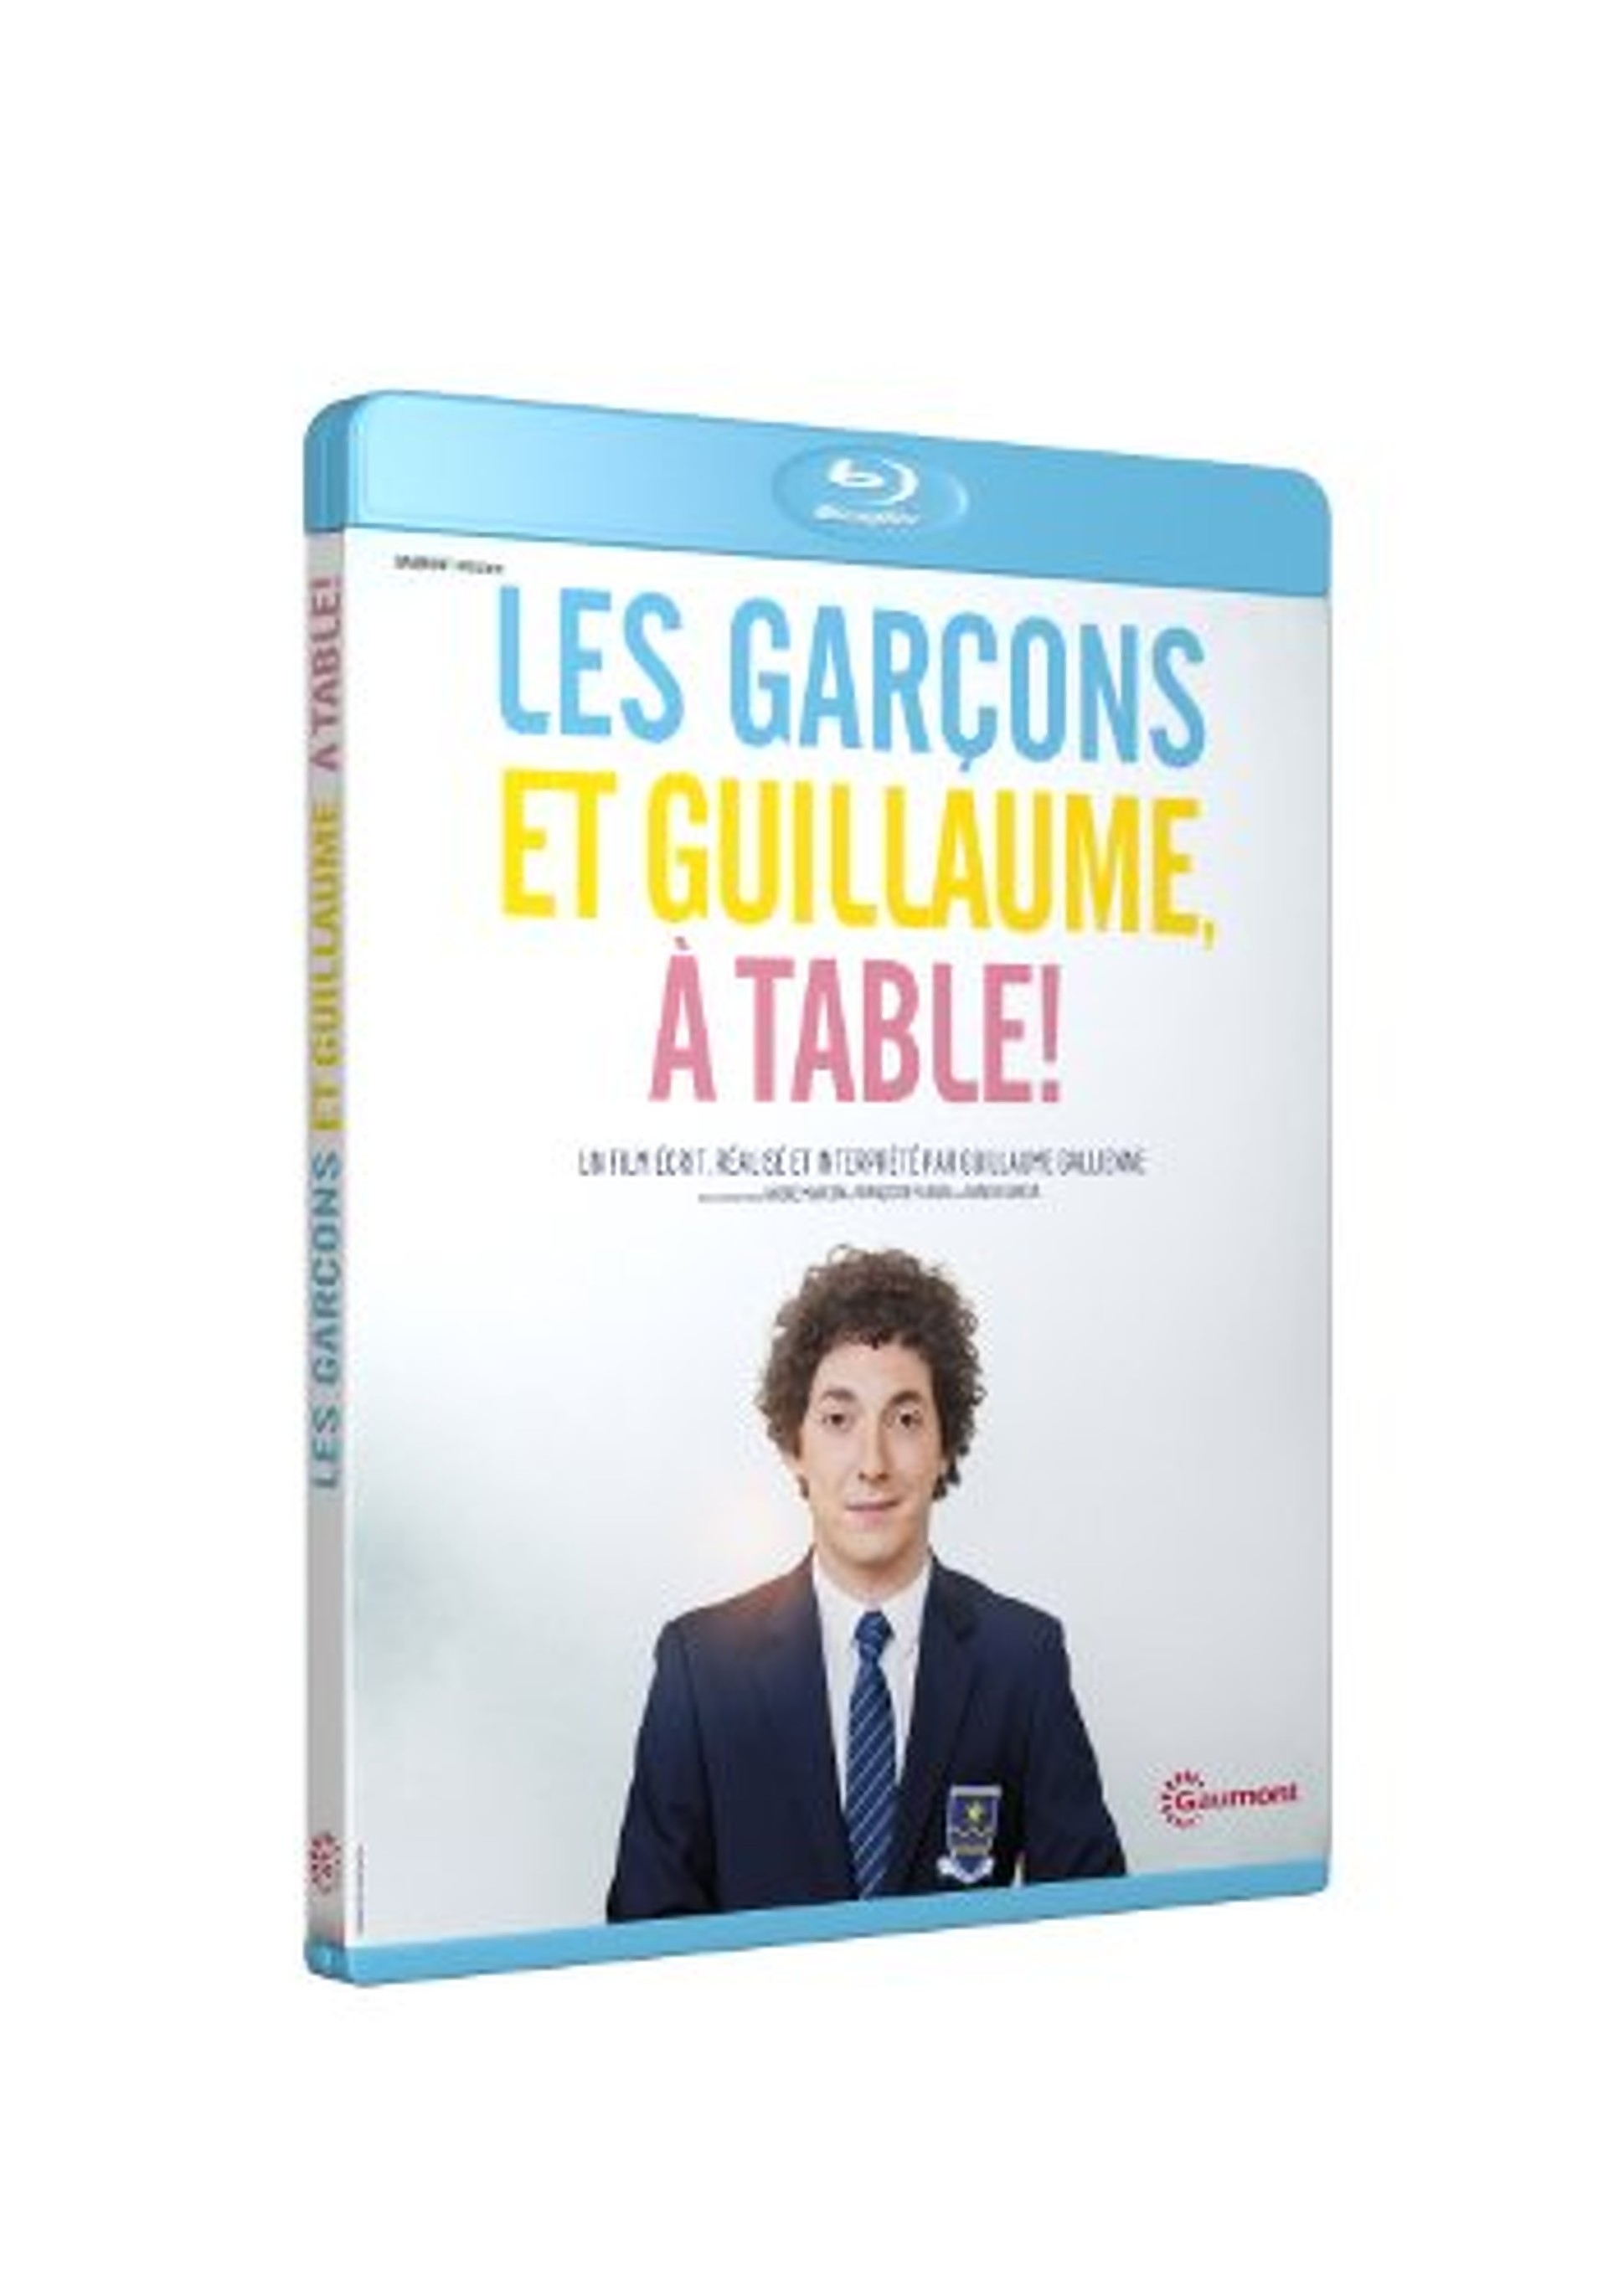 Les gar ons et guillaume table en dvd blu ray - Guillaume et les garcons a table trailer ...